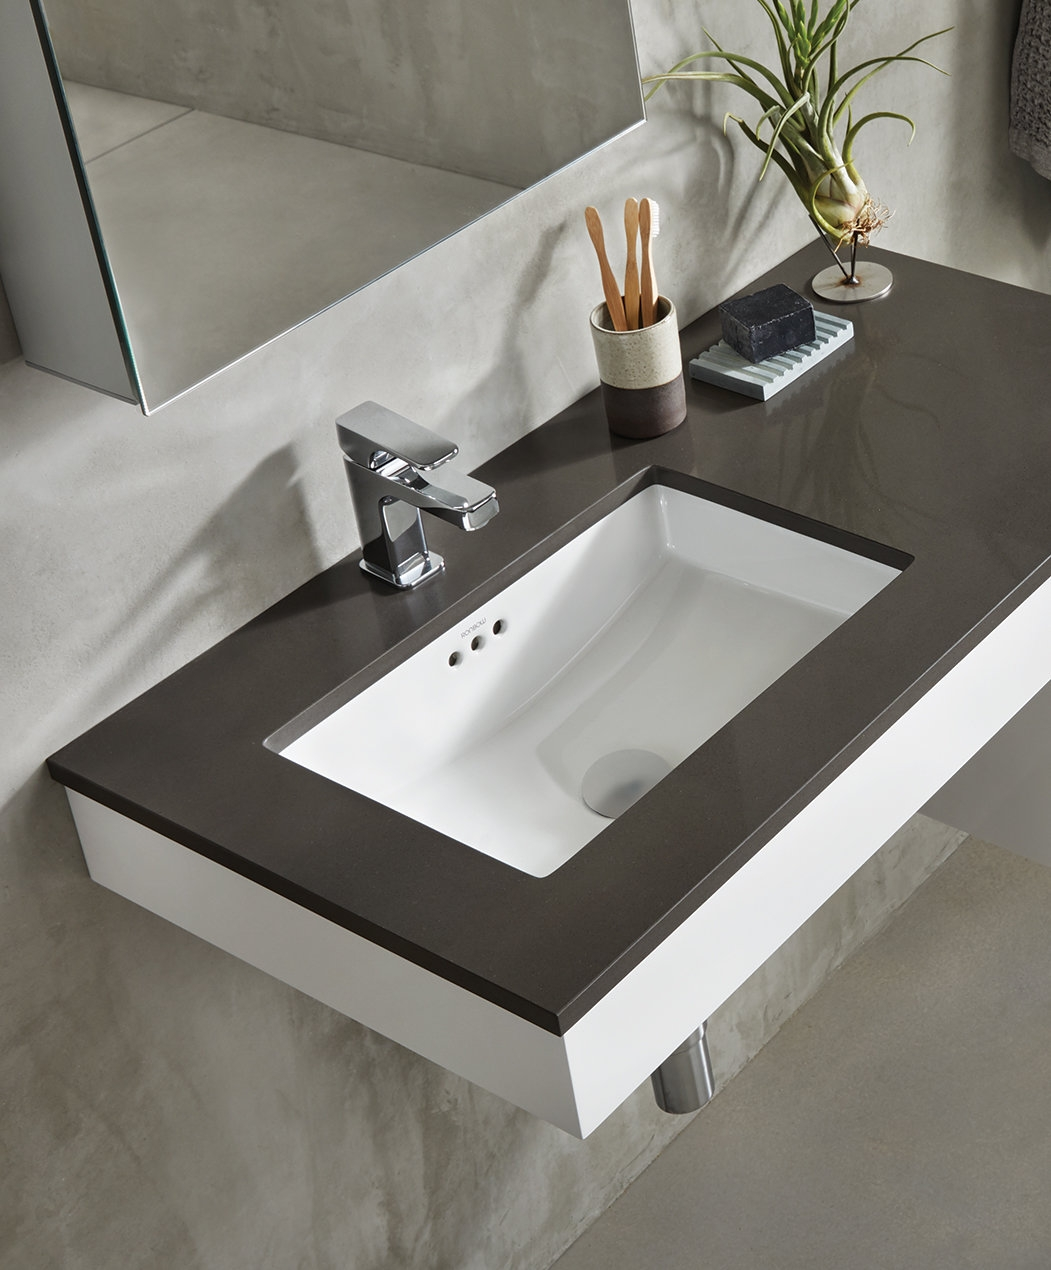 Ronbow Essence Ceramic Rectangular Undermount Bathroom Sink With